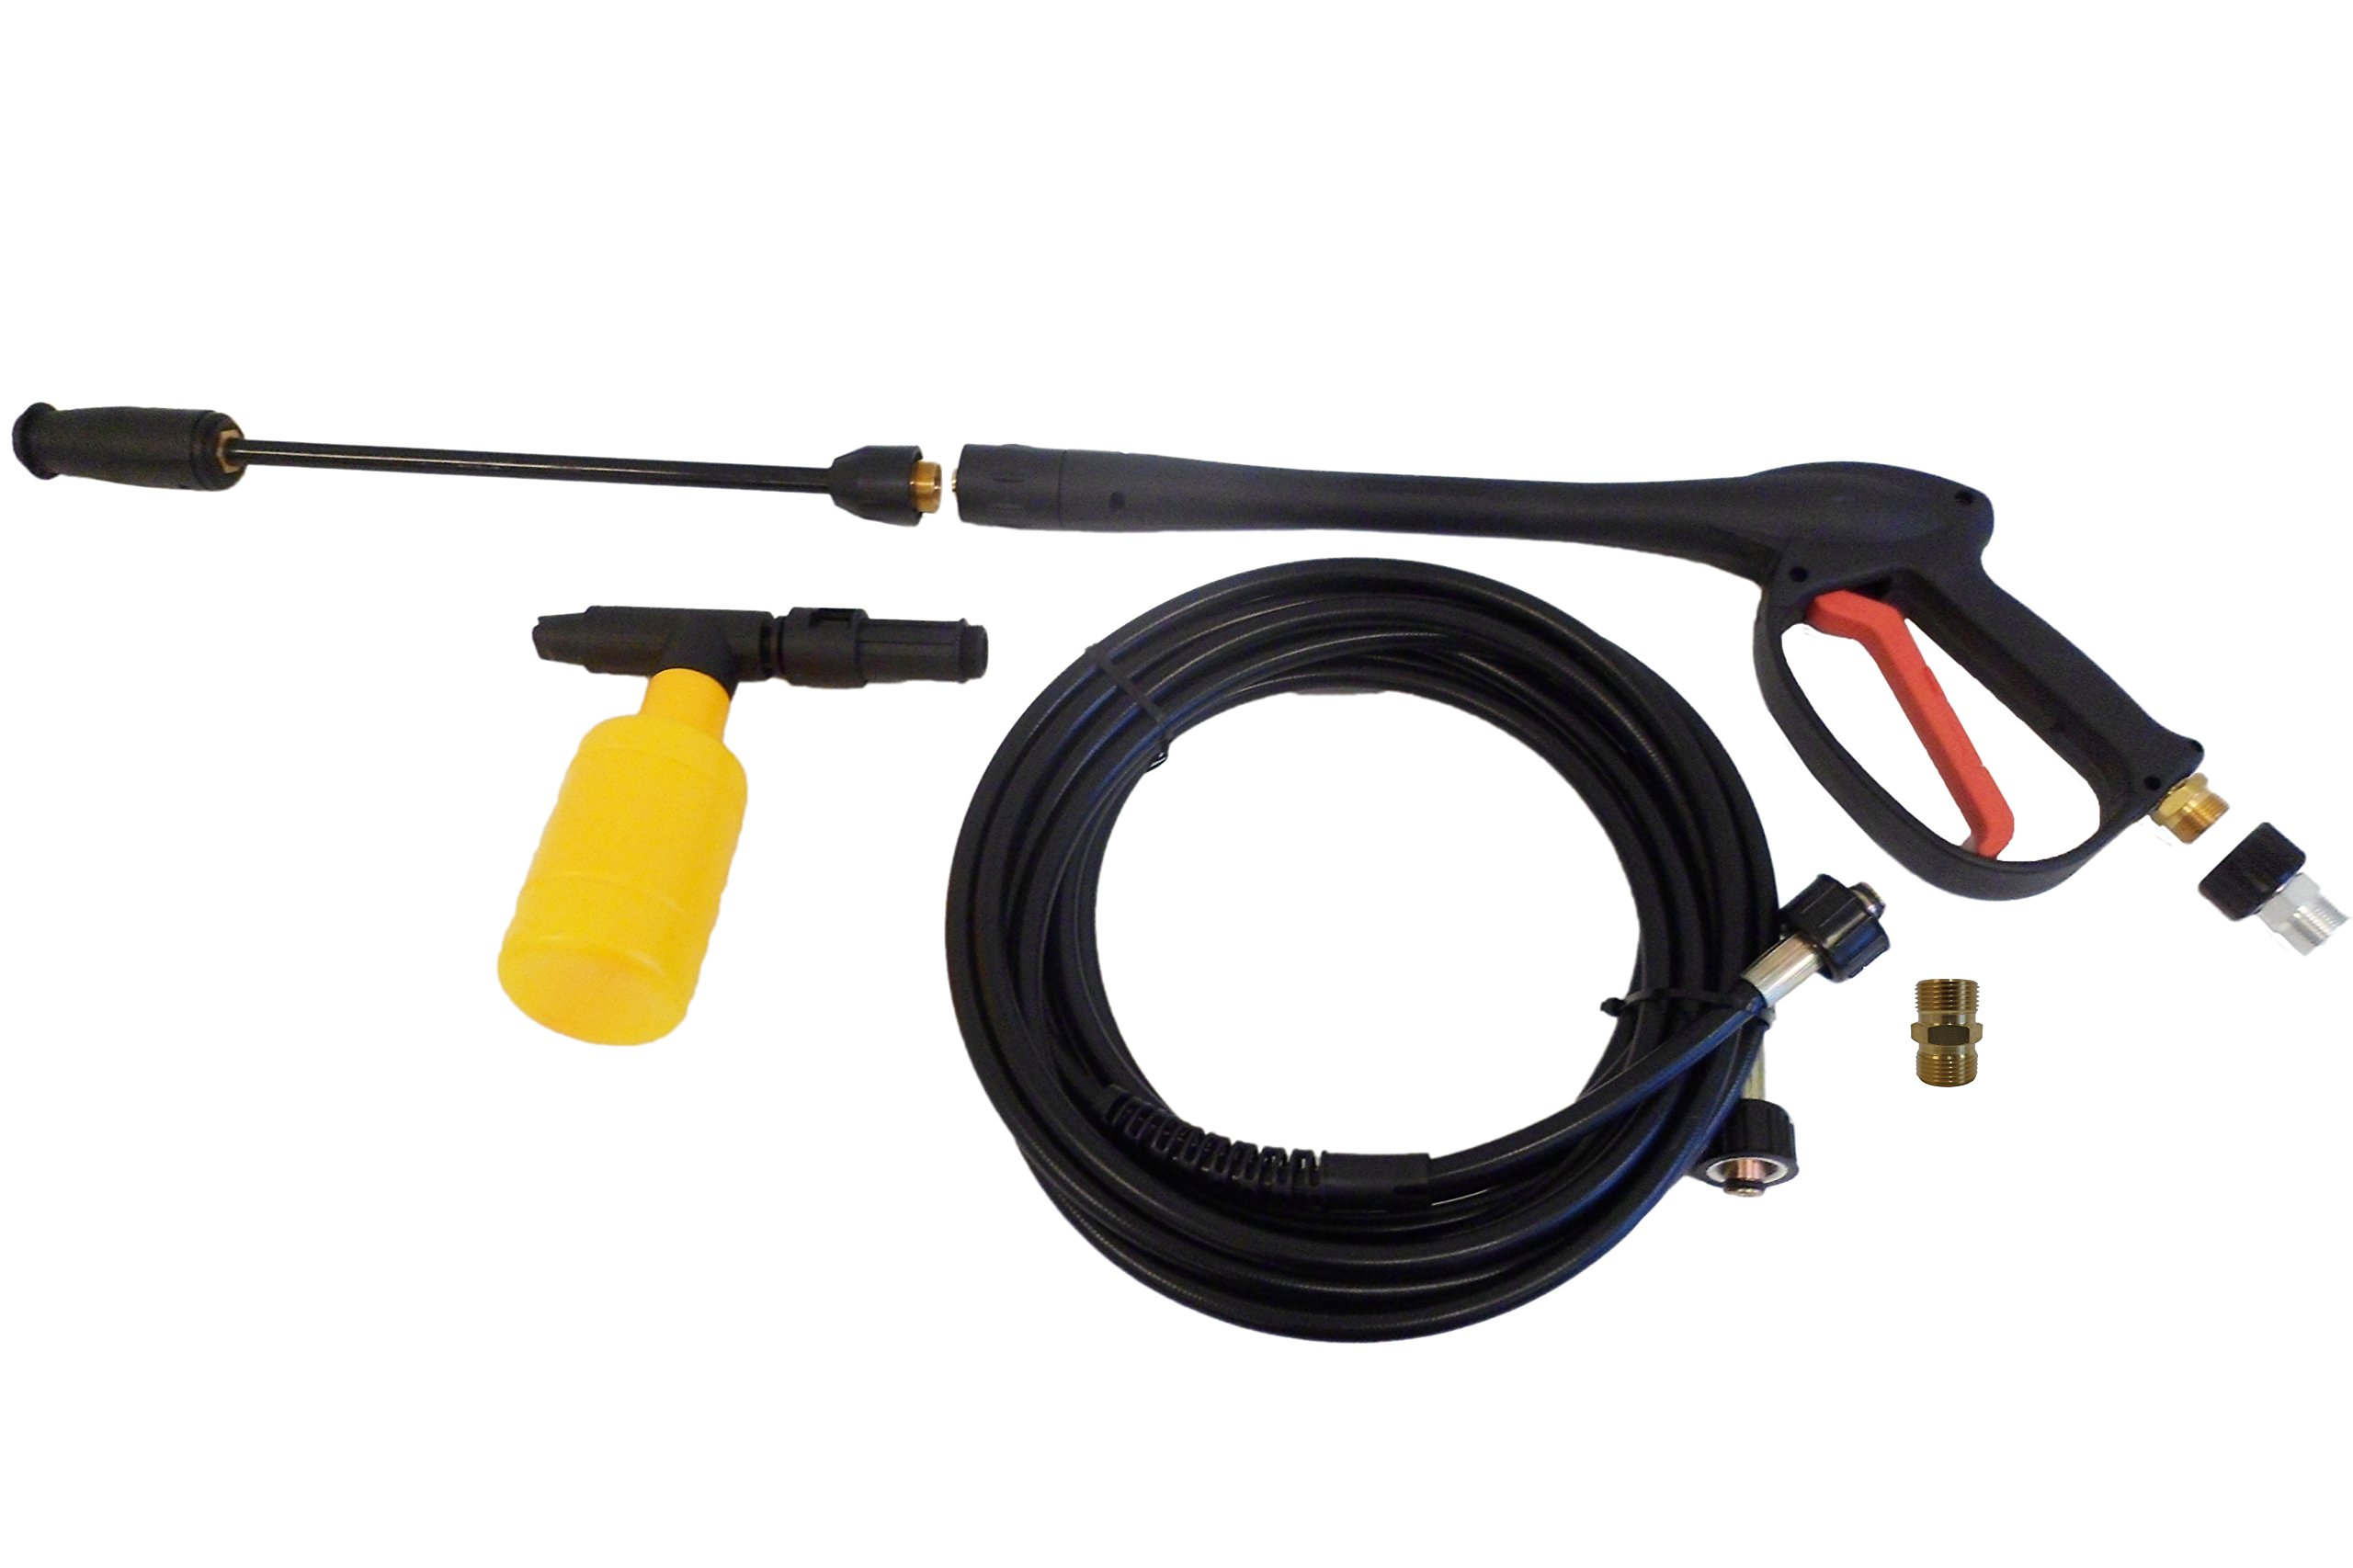 MTM Hydro 3,000 PSI Pressure Washer Gun Hose and Wand Kit With M22 Connectors